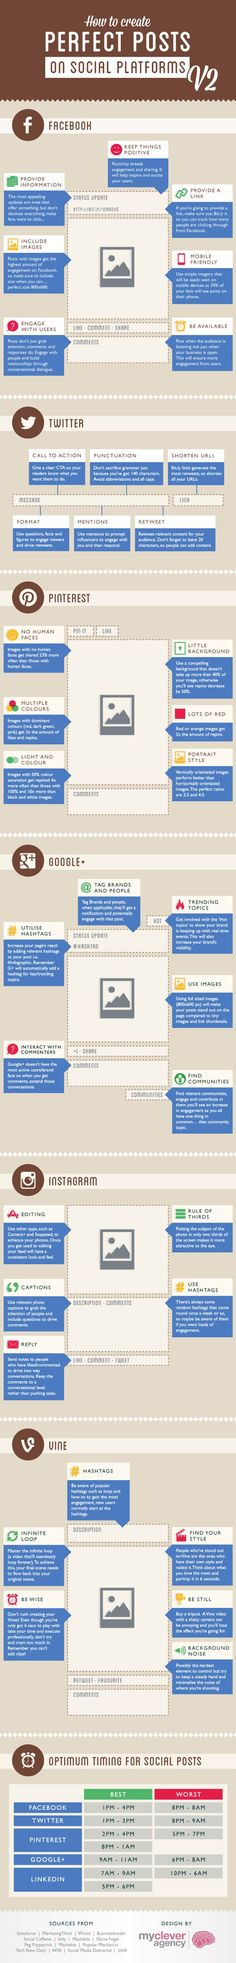 How to Create Perfect Posts on Social Media Platforms [#Infographic]